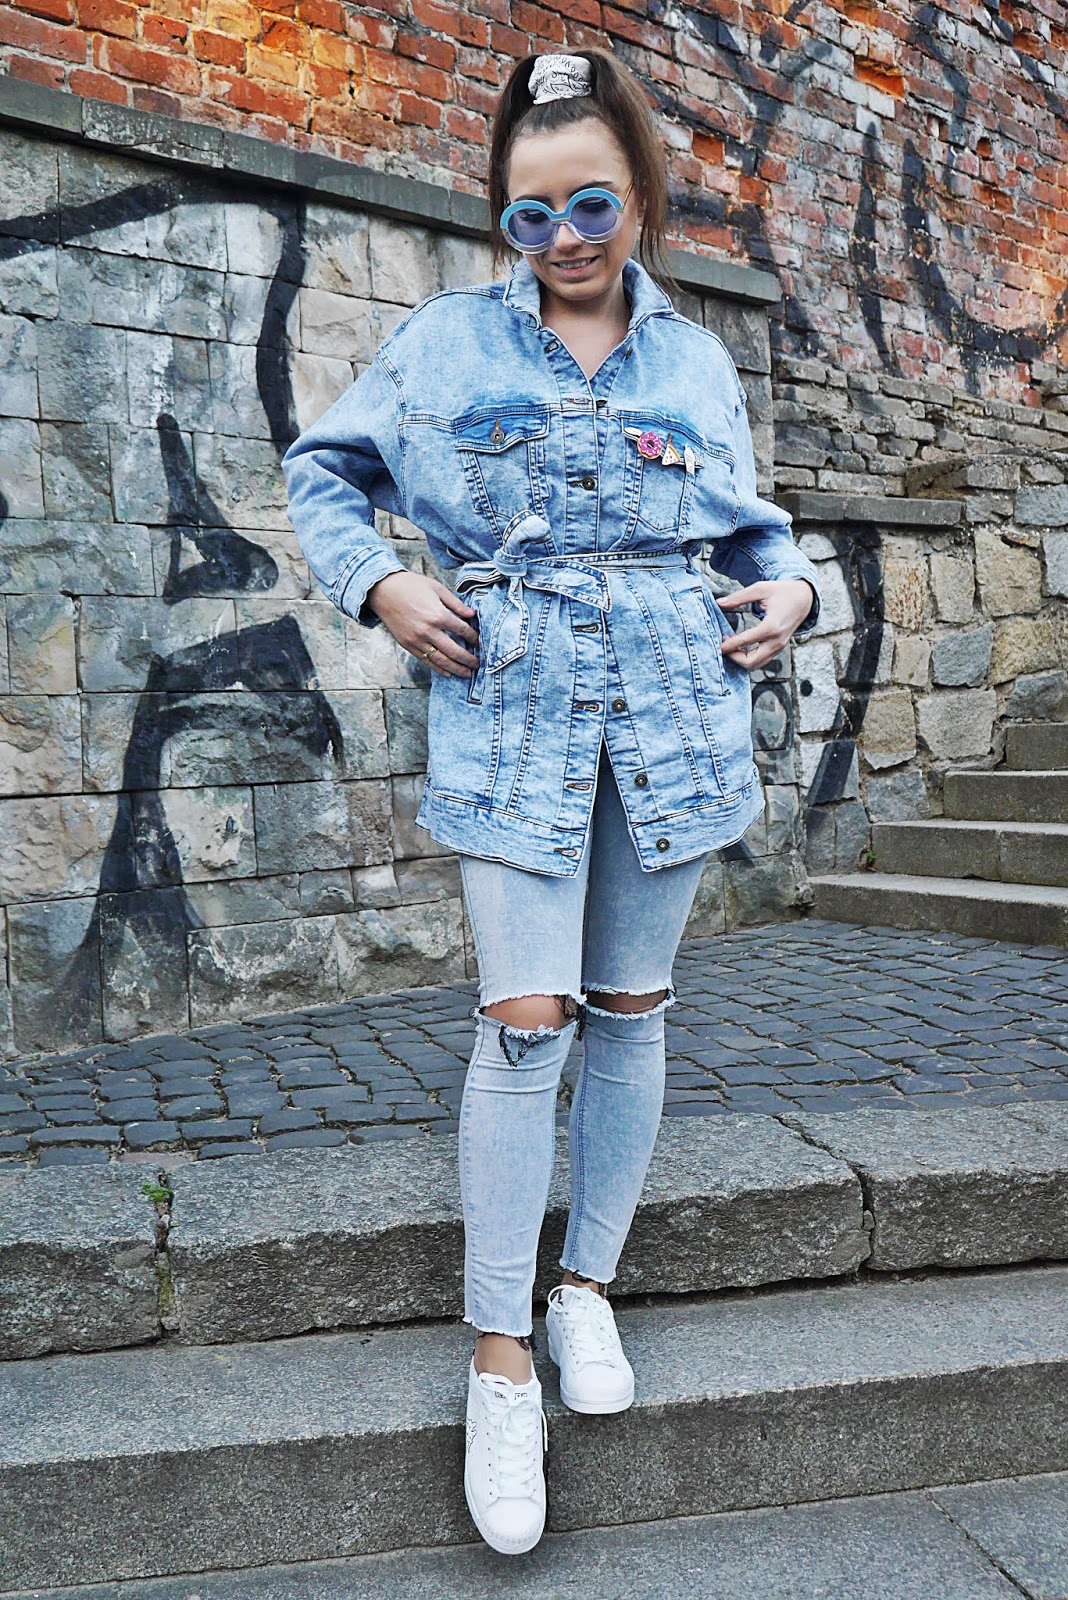 fashion blogger denim jacket bonprix kappa shoes denim pants look outfit spring karyn pulawy